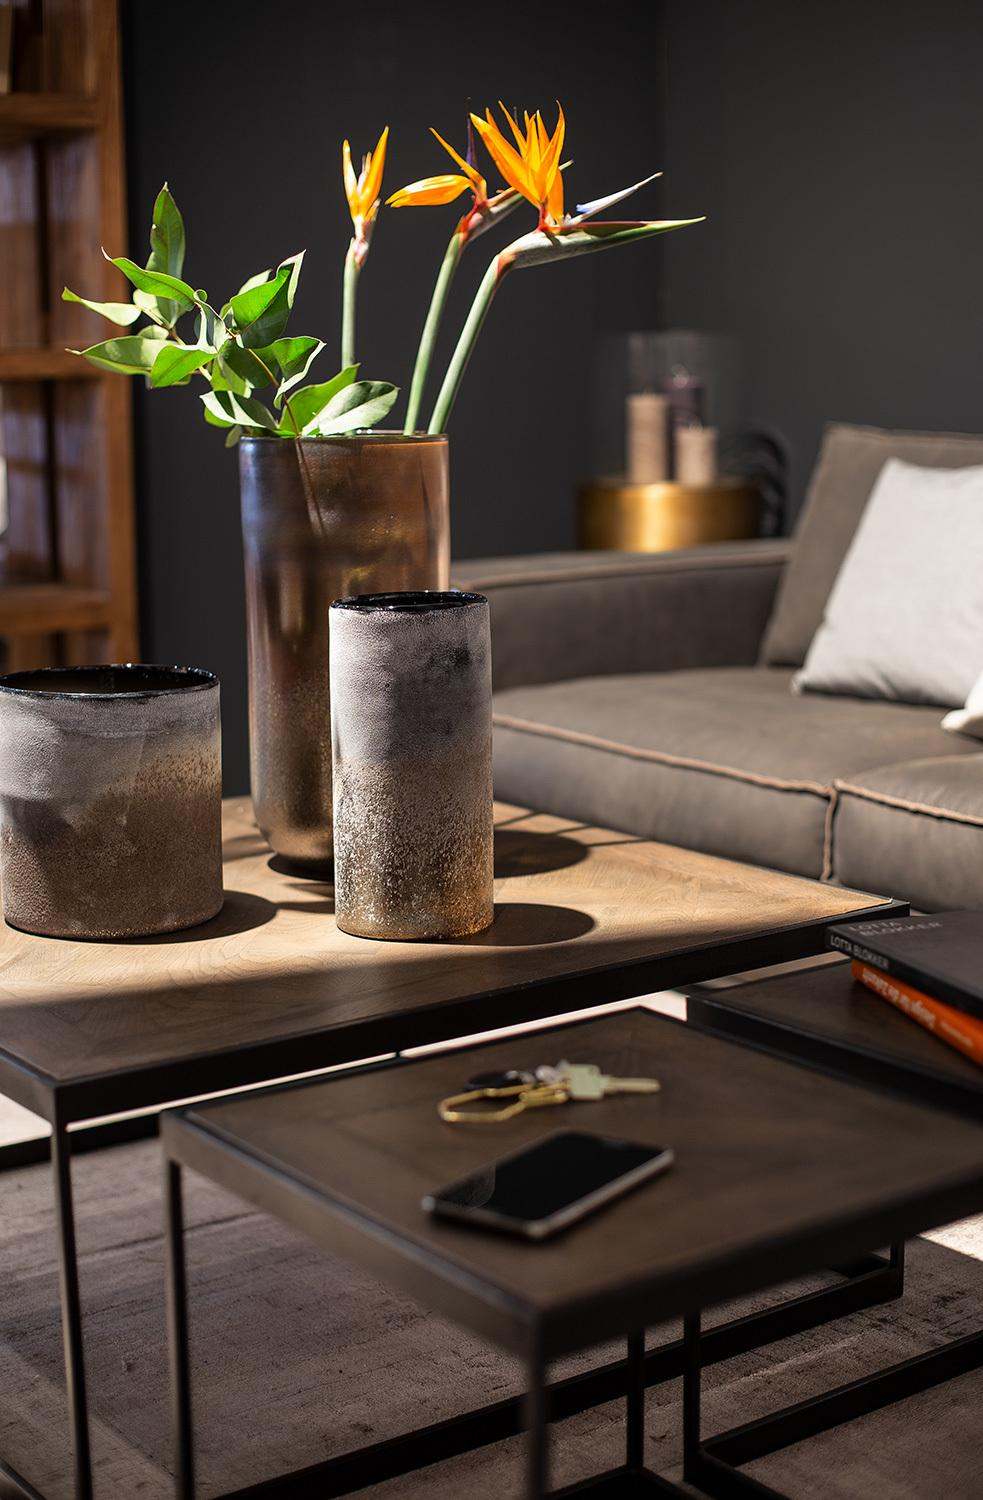 Fleur Ami Hover Coffee Table 85x85 38 Cm Oak Vintage Smoked Exclusive Planters Vases Accents